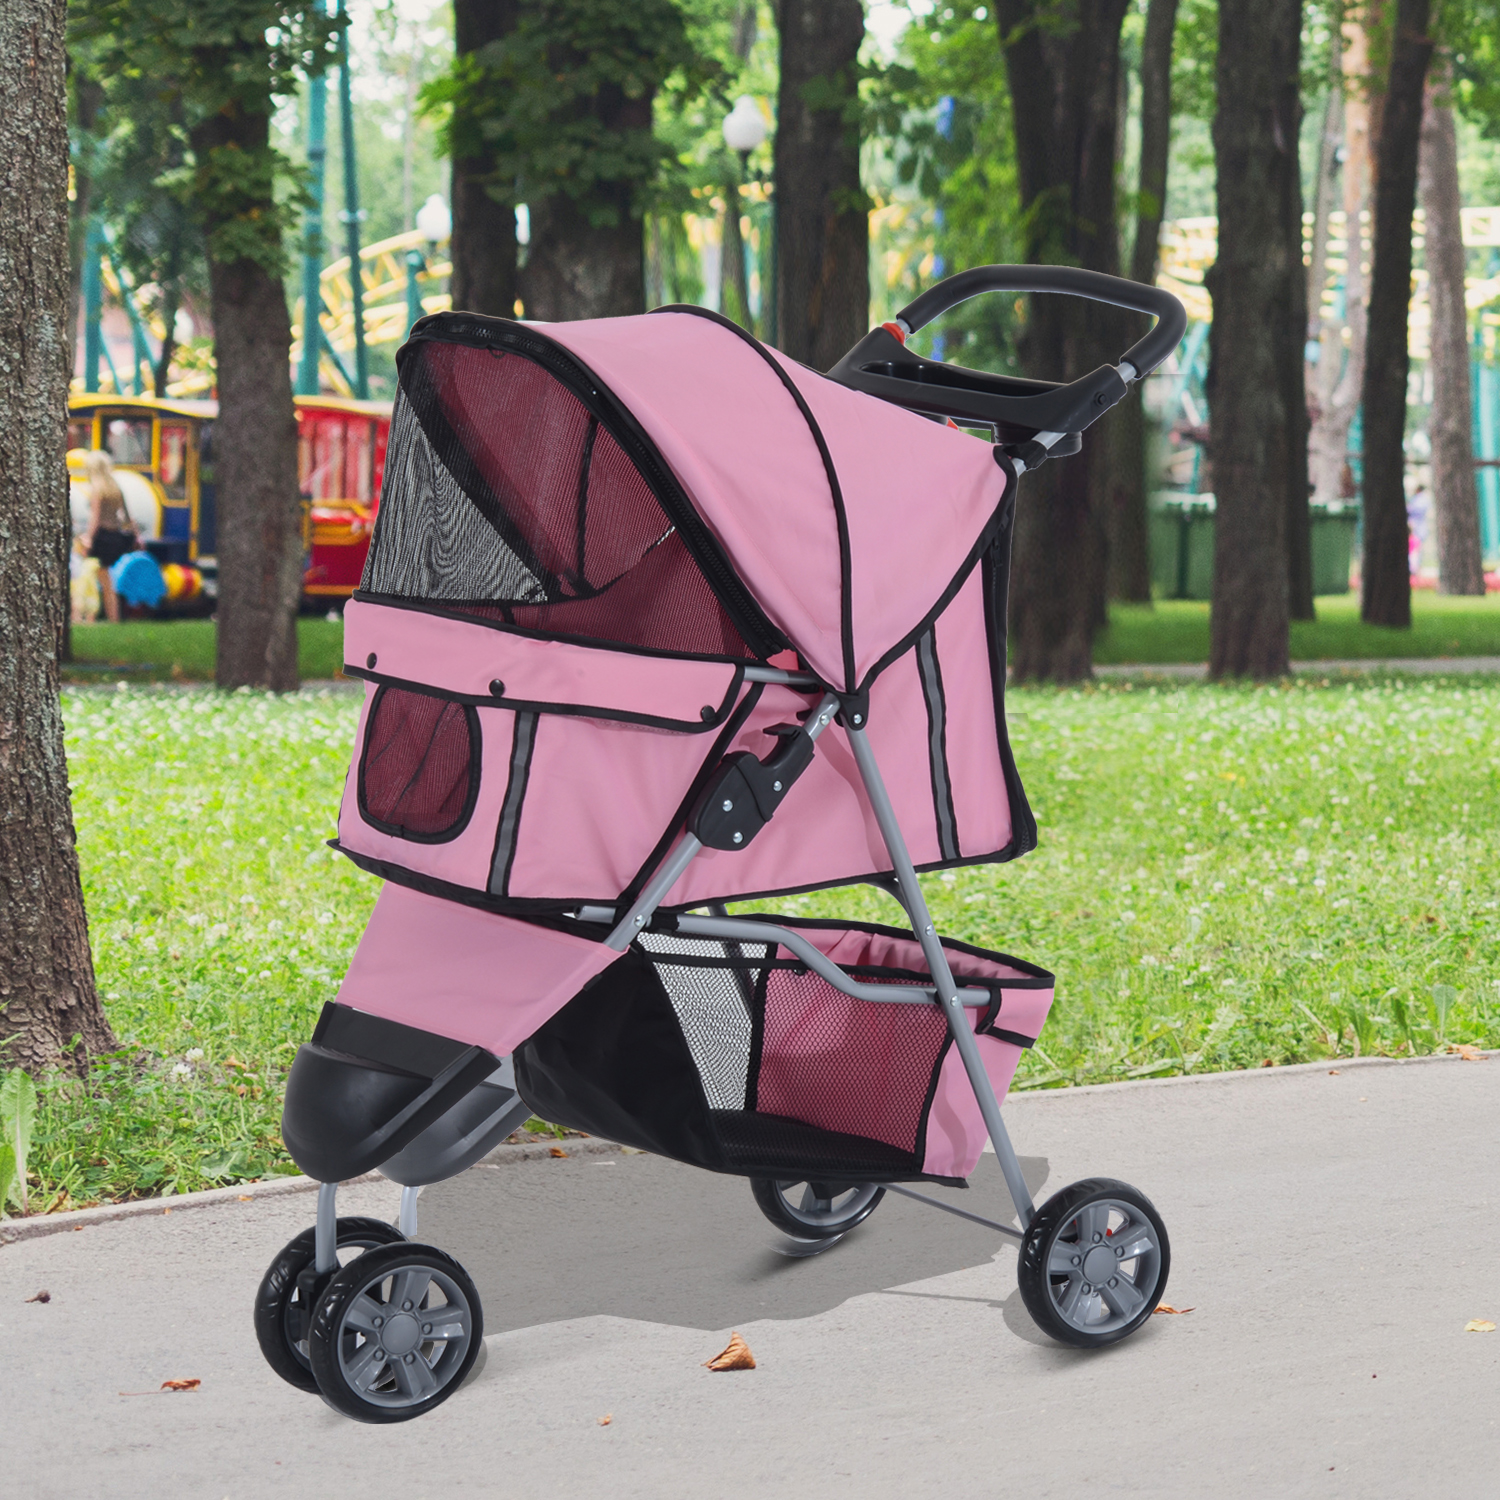 Oxford Pet Stroller Ebay Details About Pawhut Pushchair Carrier Pet Stroller Dog Cat Puppy Jogging W 3 Wheels Pink New